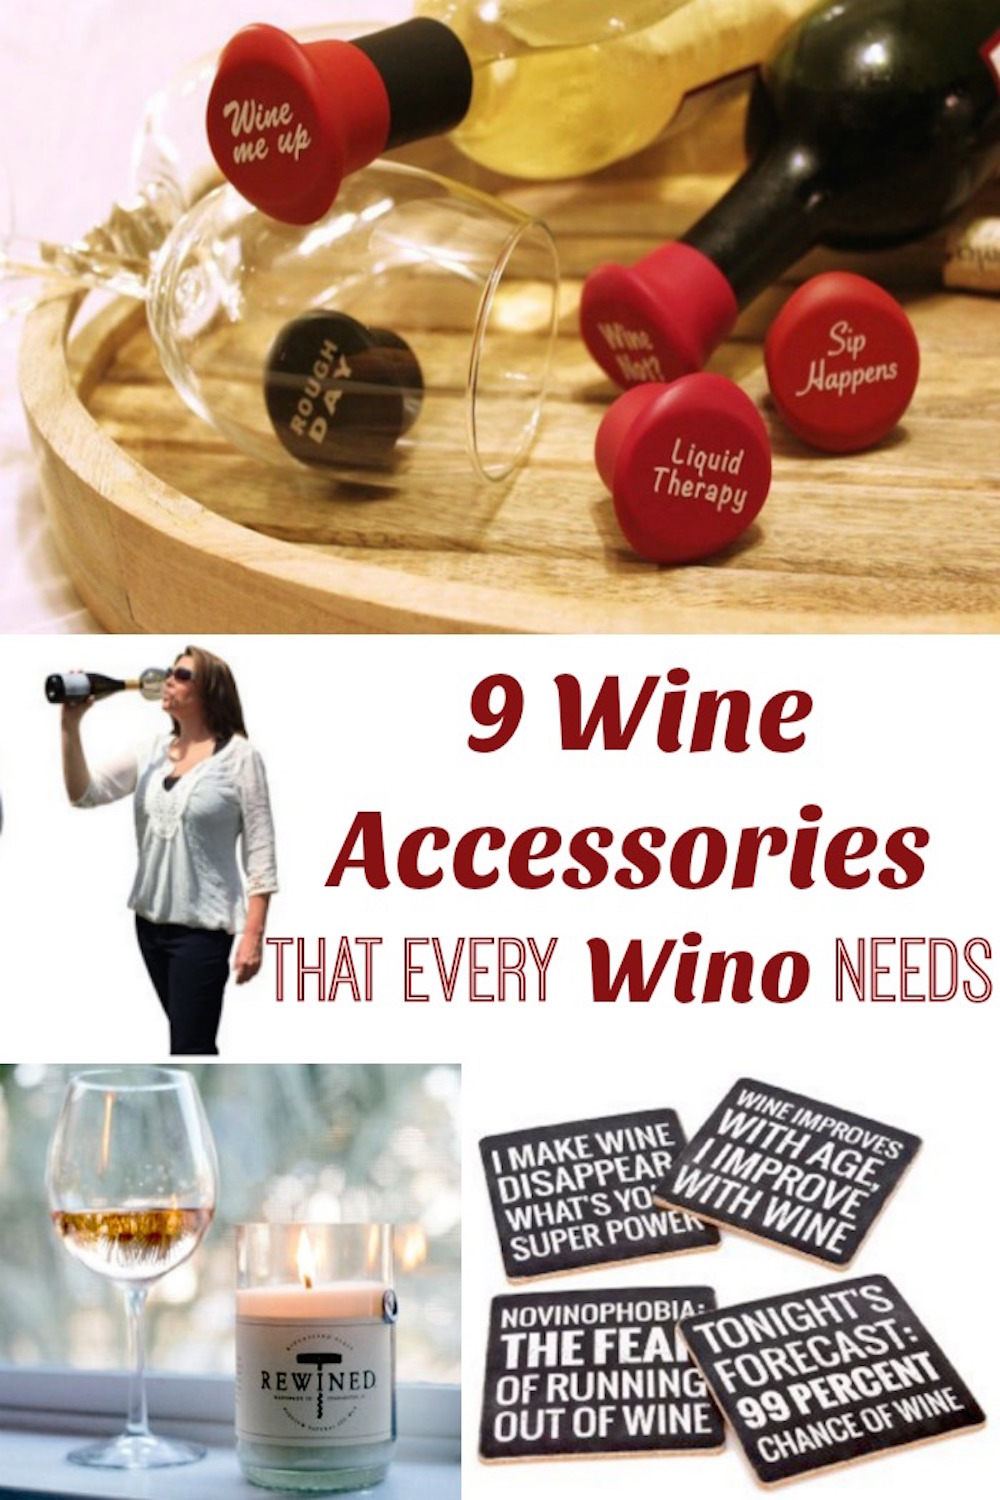 9 Wine Accessories That Every Wino Needs Now - Here are some great gift ideas for the wine lover in your life (or yourself)